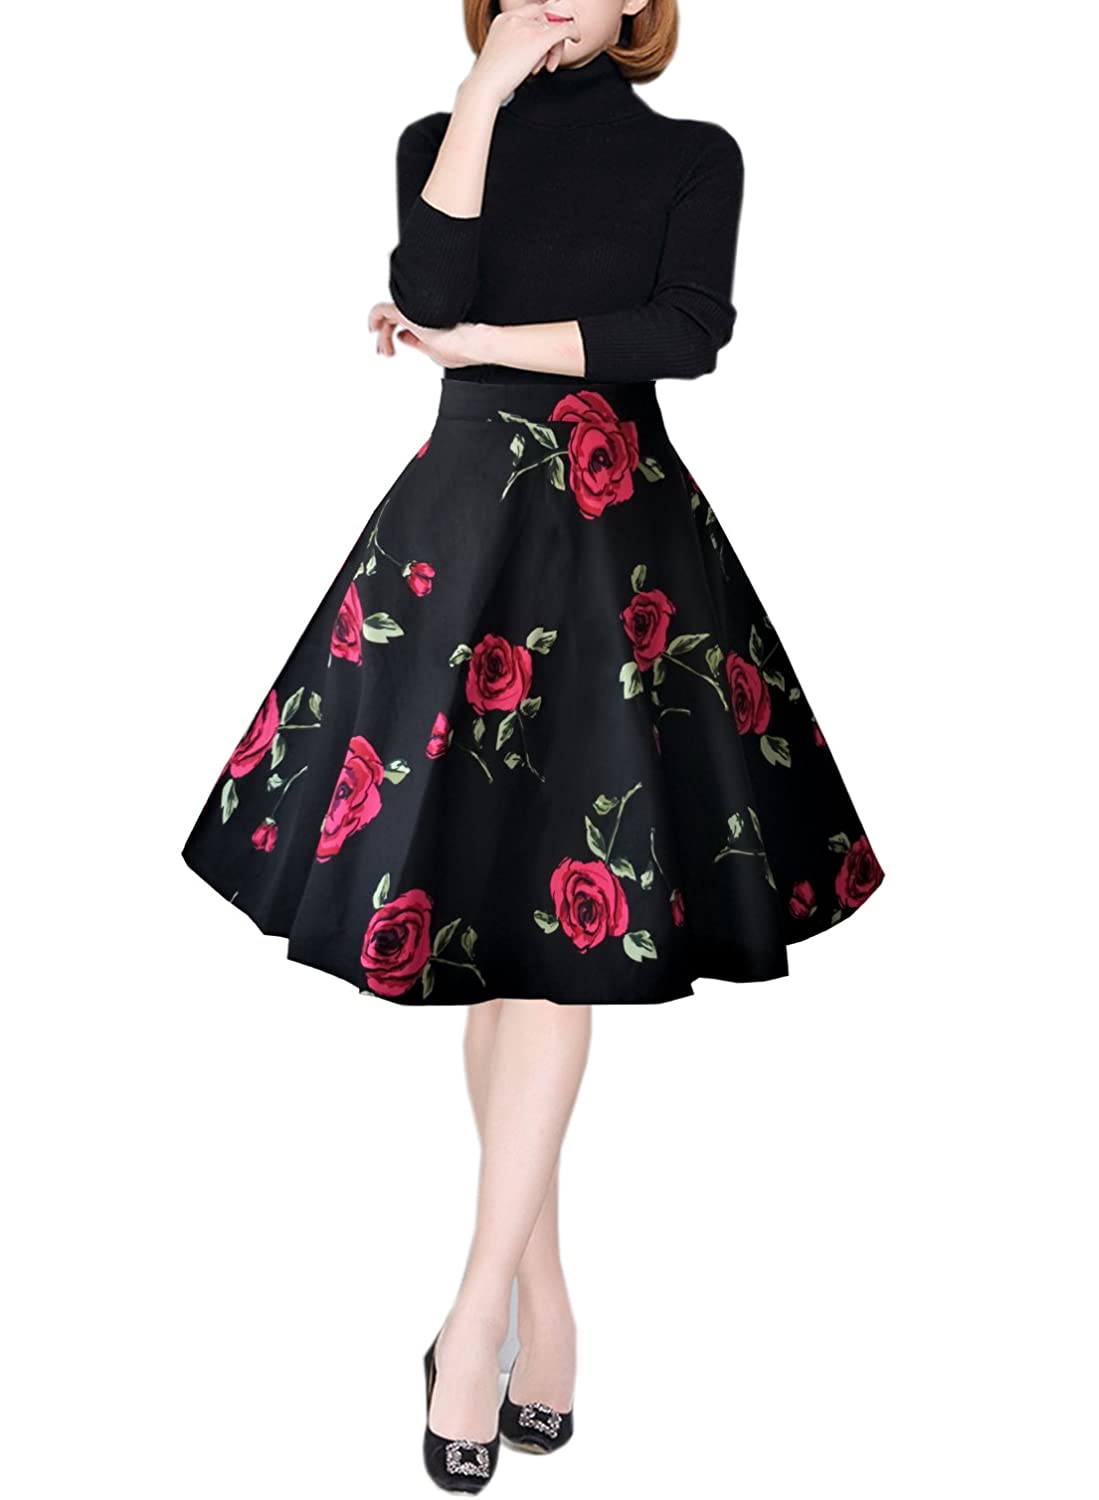 Newest Fashion Spring Summer Large Swing High Waist Skirt Female Printing Long Floral A Line Knee Length Skirt Skirts Bottoms